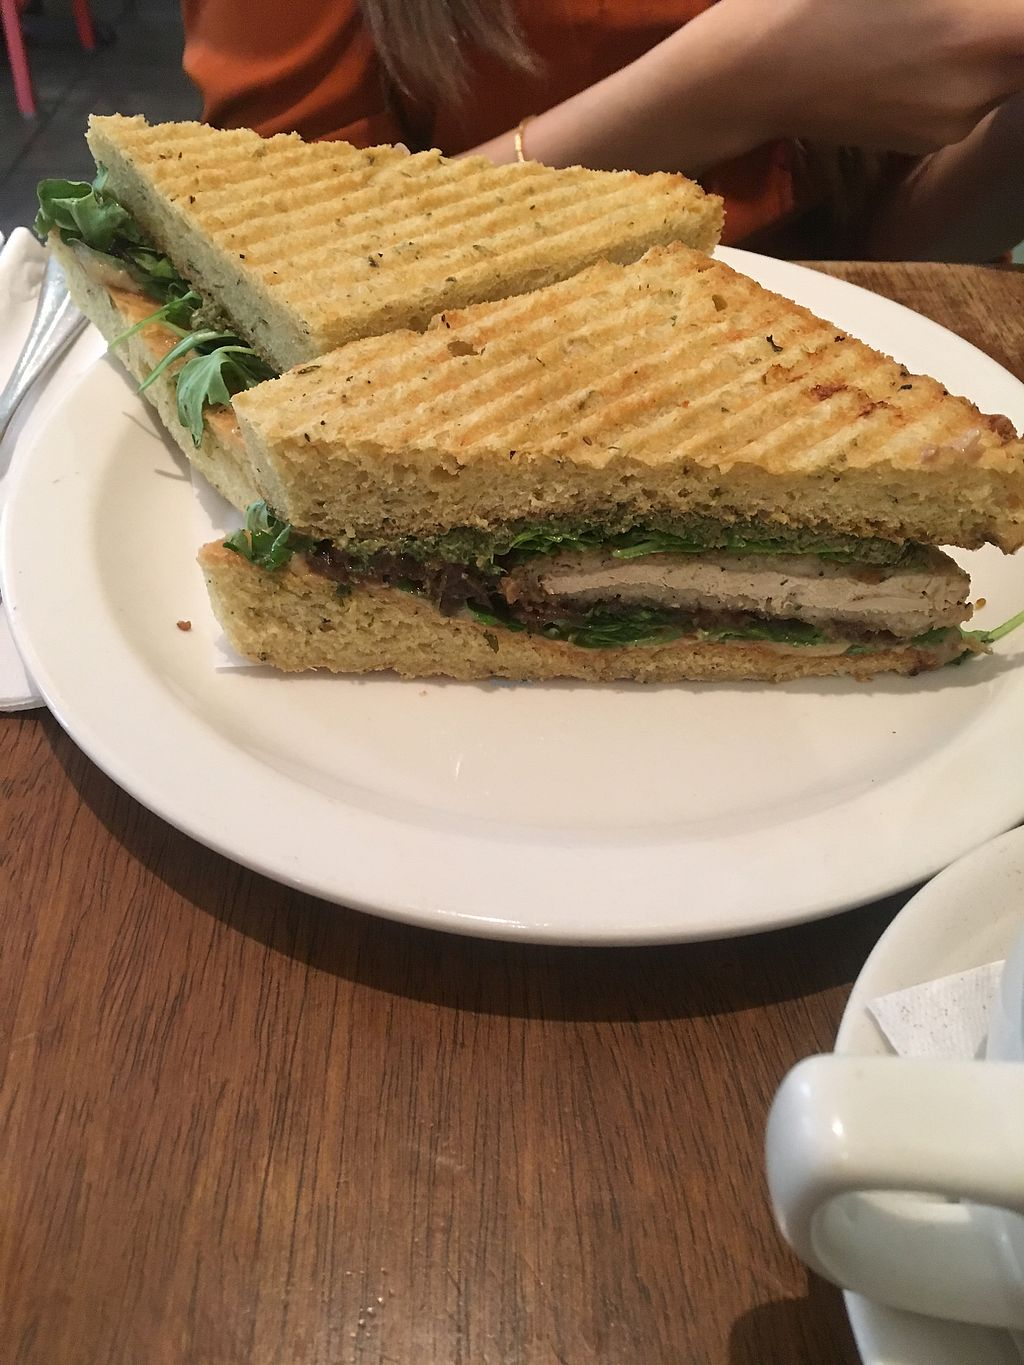 """Photo of Peacefood Cafe - Uptown  by <a href=""""/members/profile/770veg"""">770veg</a> <br/>pfc seitan medallion sandwich w/ caramelized onions! the bomb!!!  <br/> July 6, 2017  - <a href='/contact/abuse/image/17713/277255'>Report</a>"""